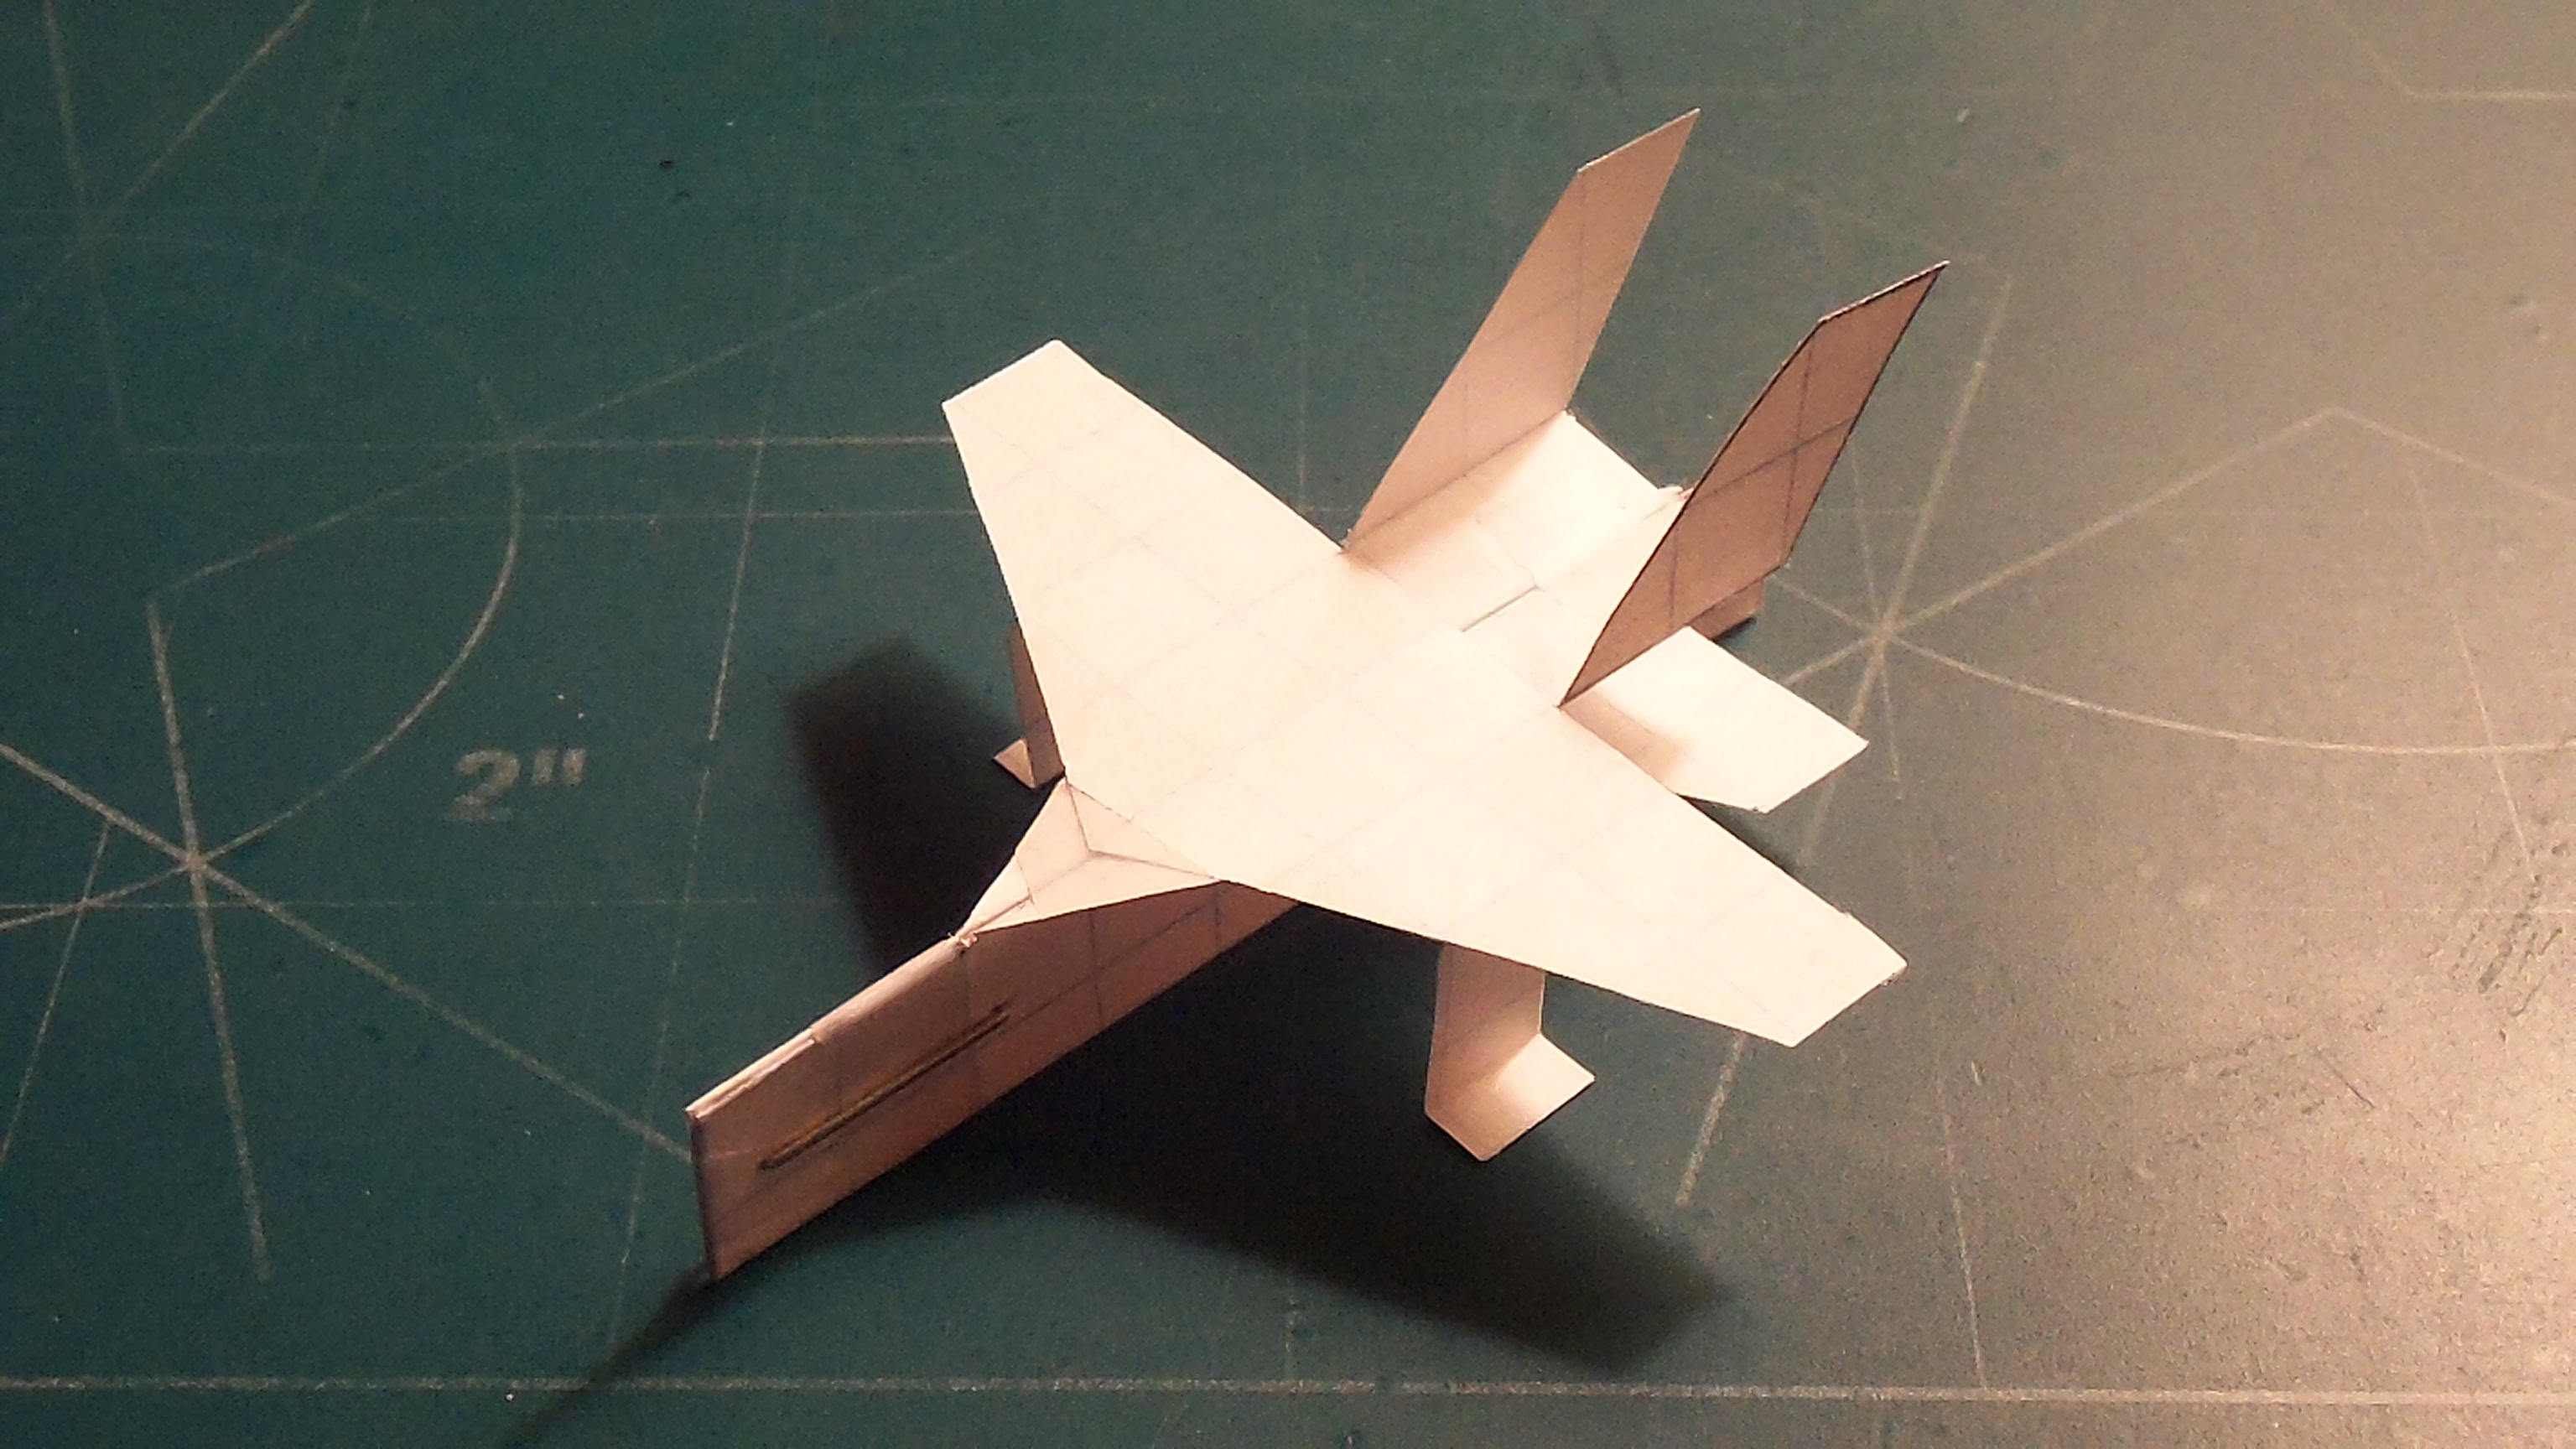 How To Make The SkyRanger Paper Airplane